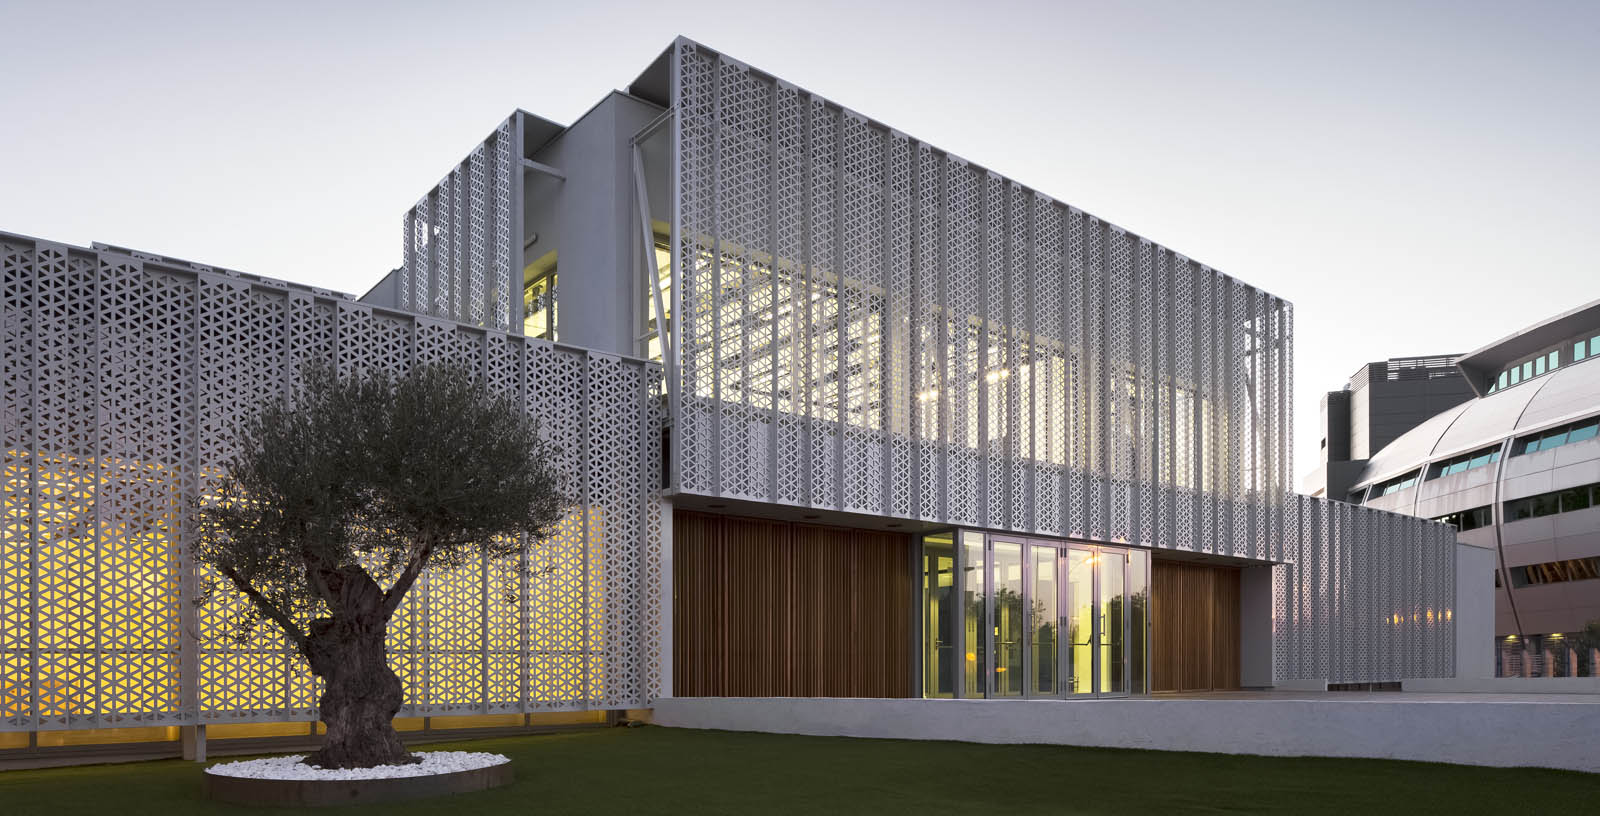 New-Campus-Red-Electrica-46-Architecture-IDOM-photos-Aitor-Ortiz